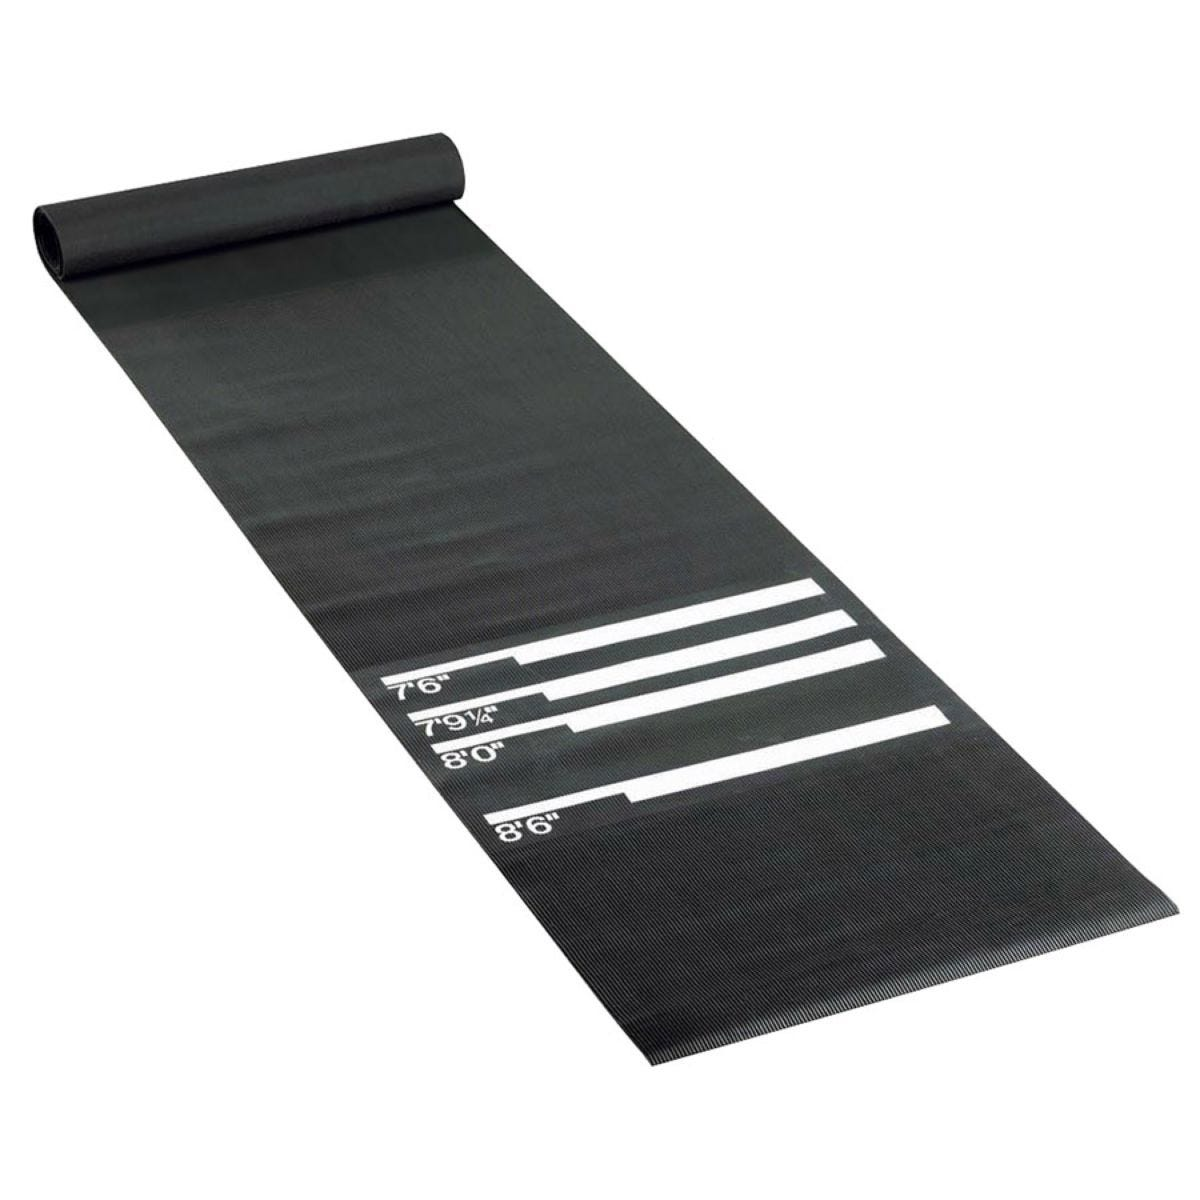 Mightymast Rubber Darts Mat